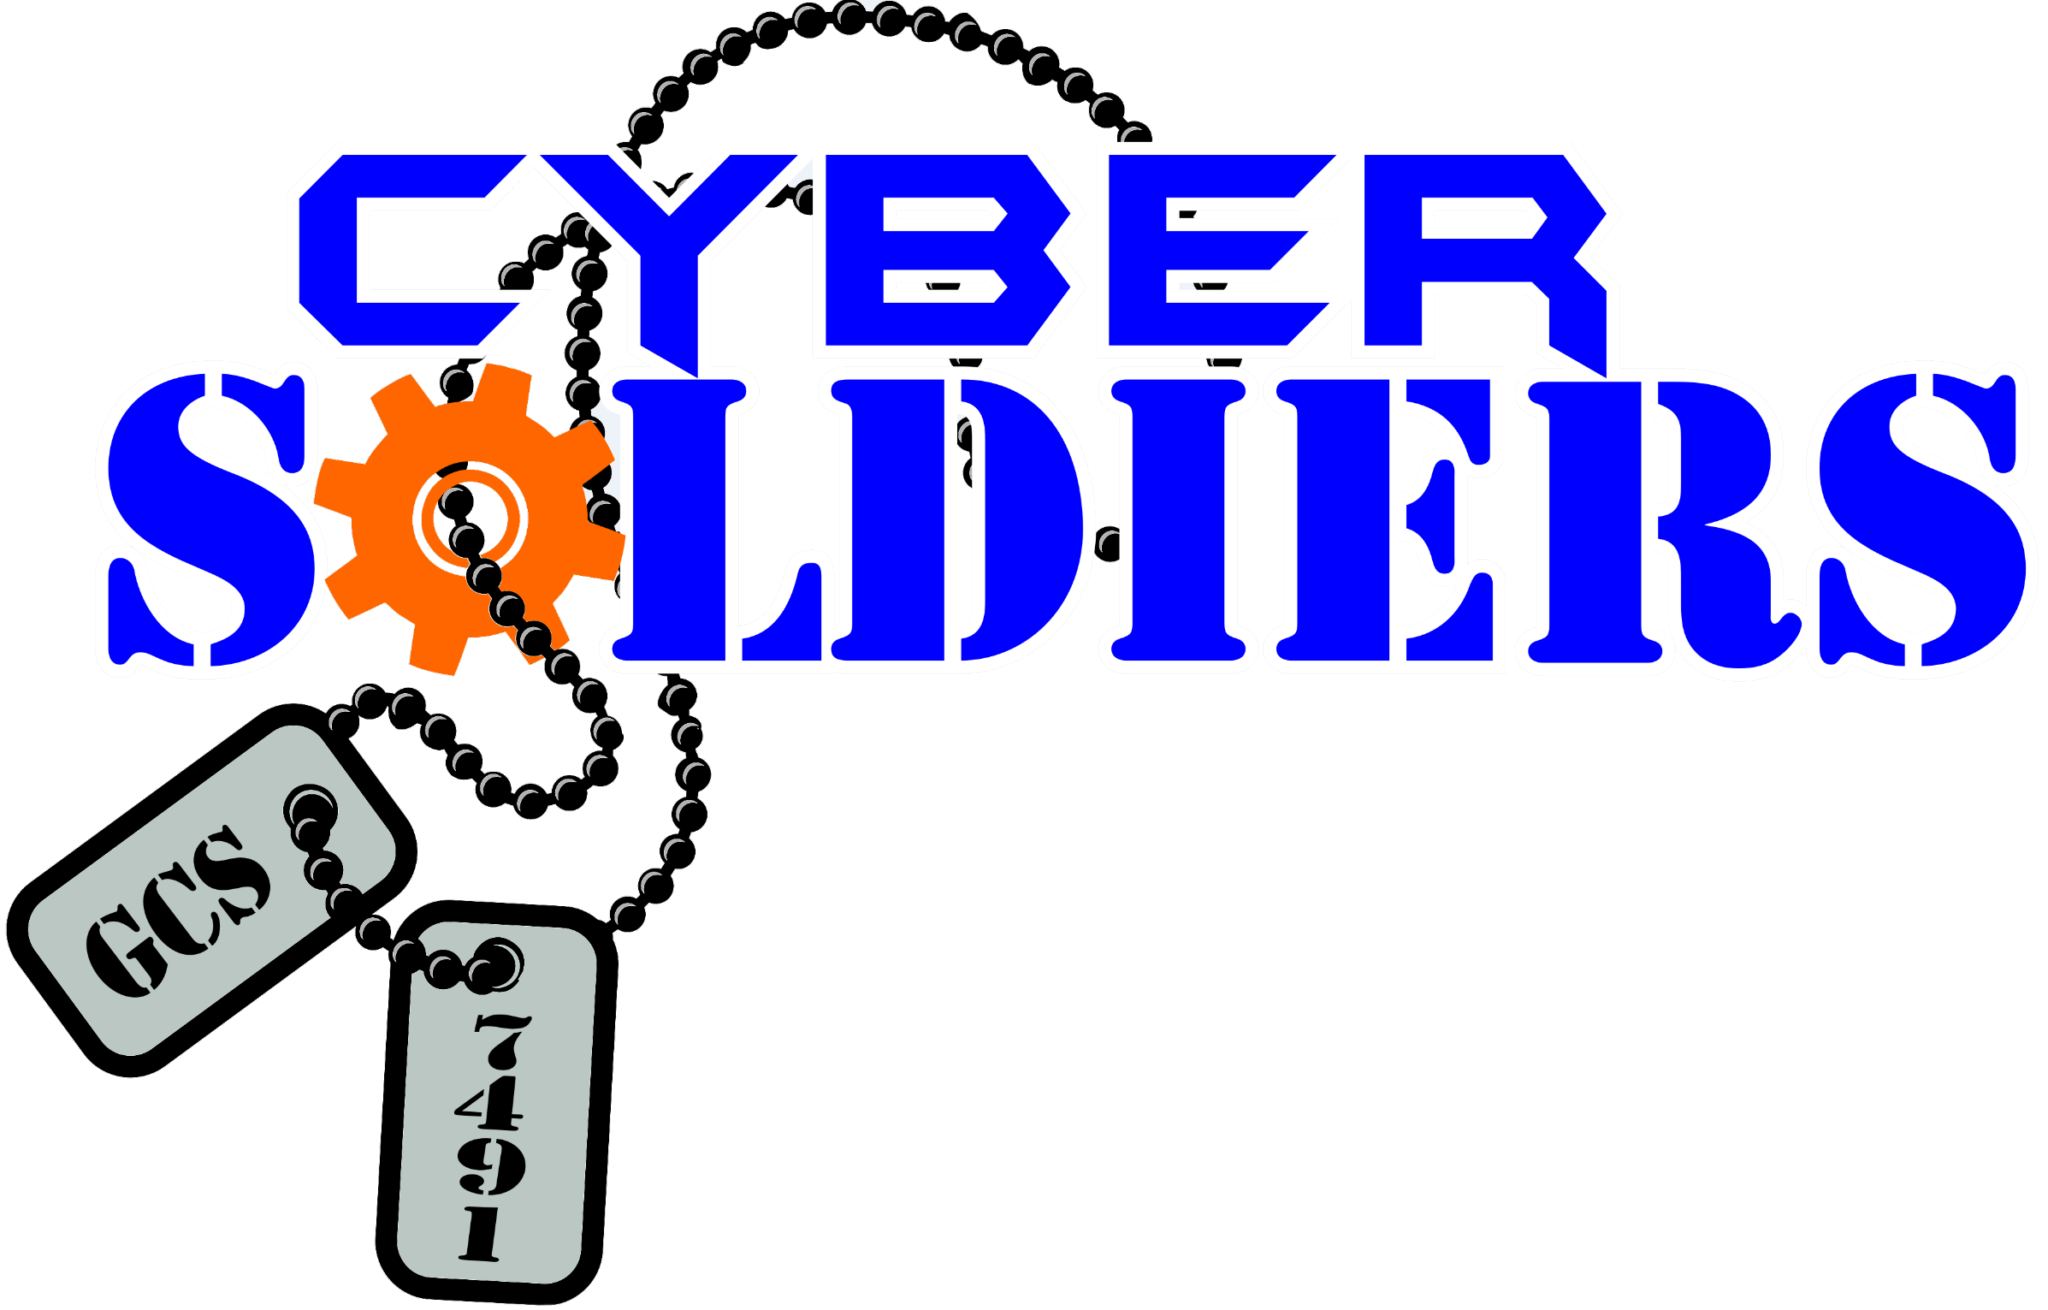 Cyber Soldiers 7491